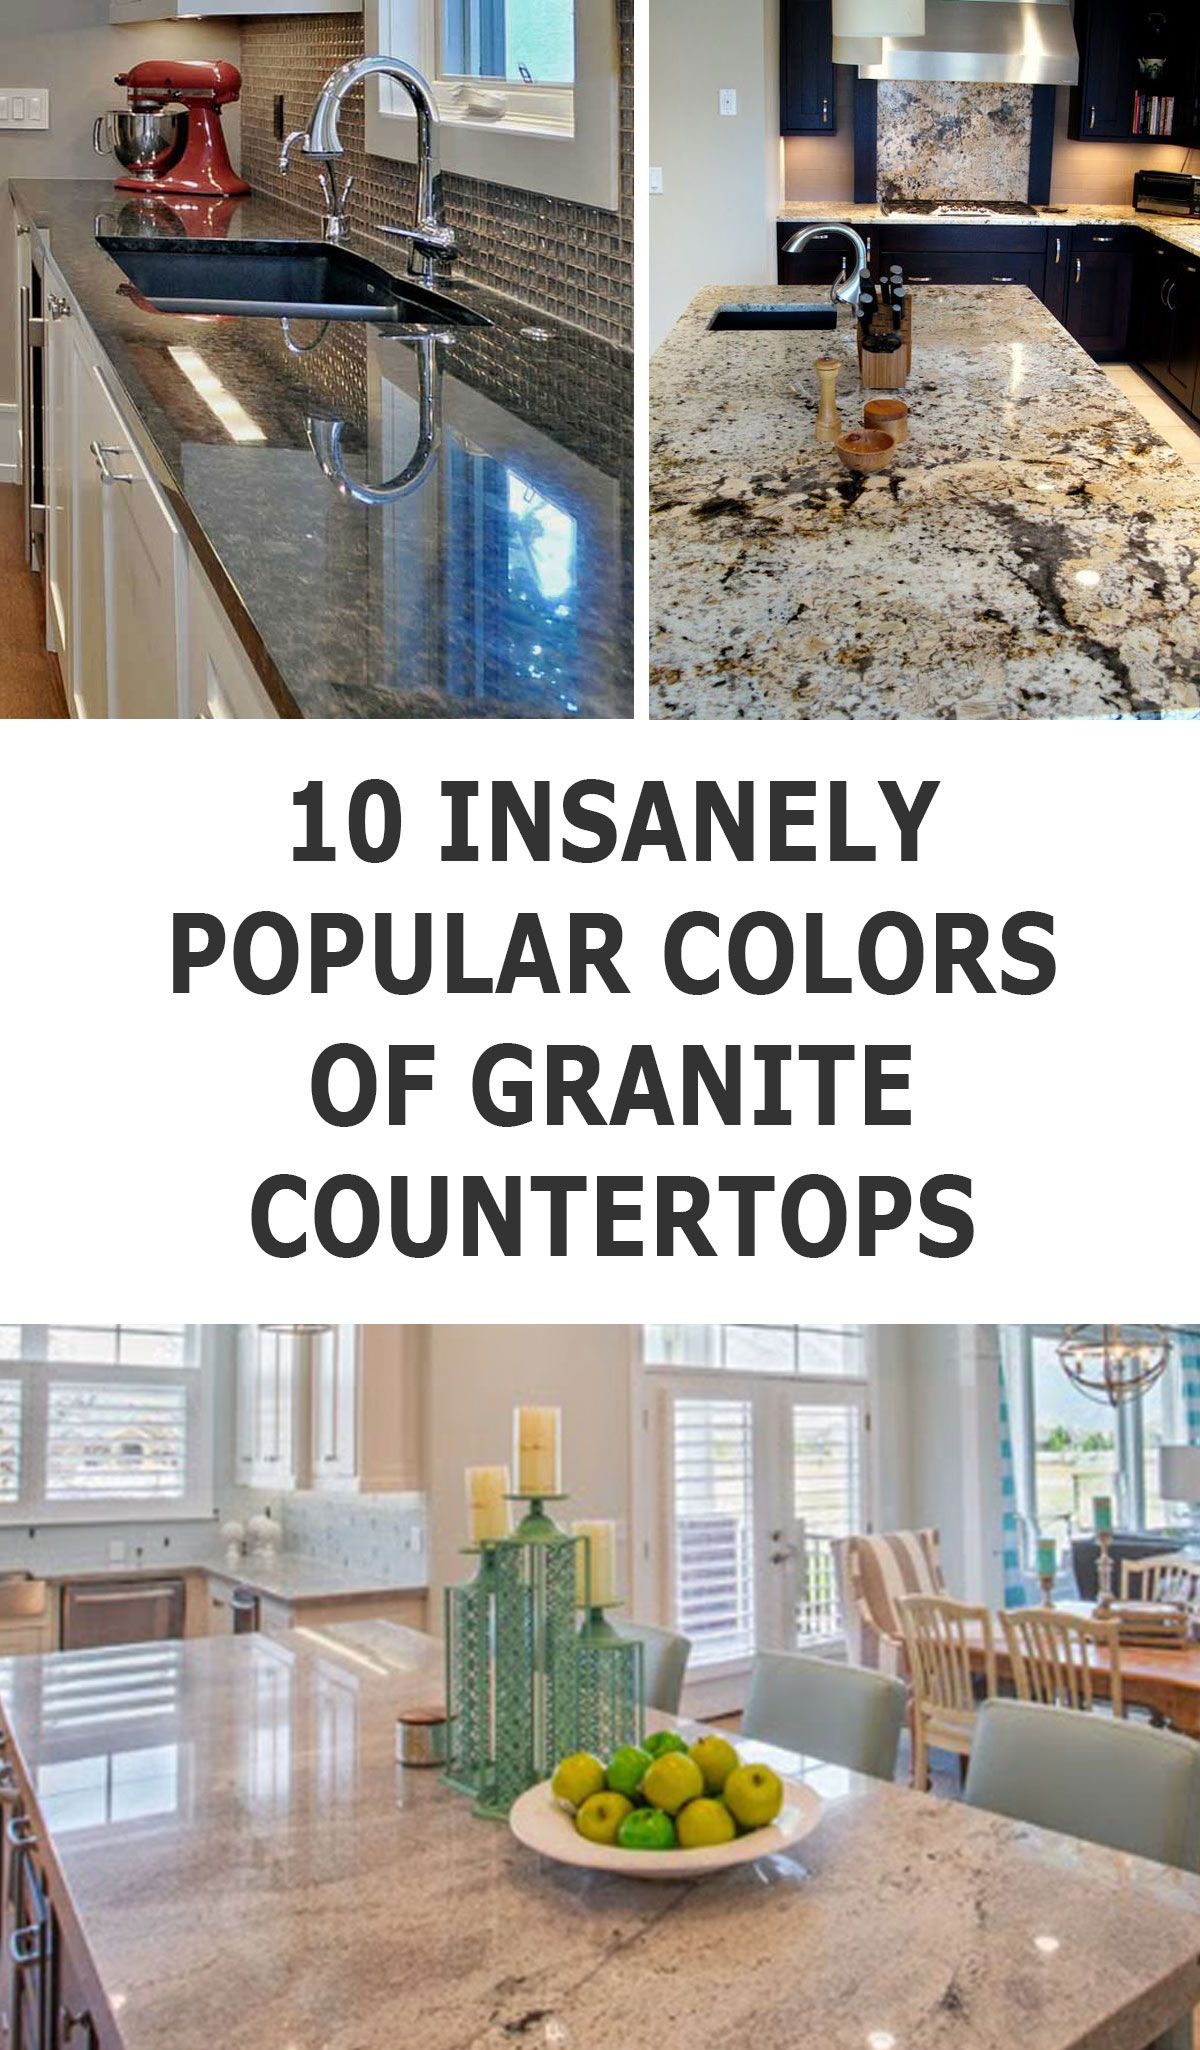 10 Delightful Granite Countertop Colors With Names And Pictures Kitchen Remodel Countertops Granite Countertops Kitchen Remodel Small